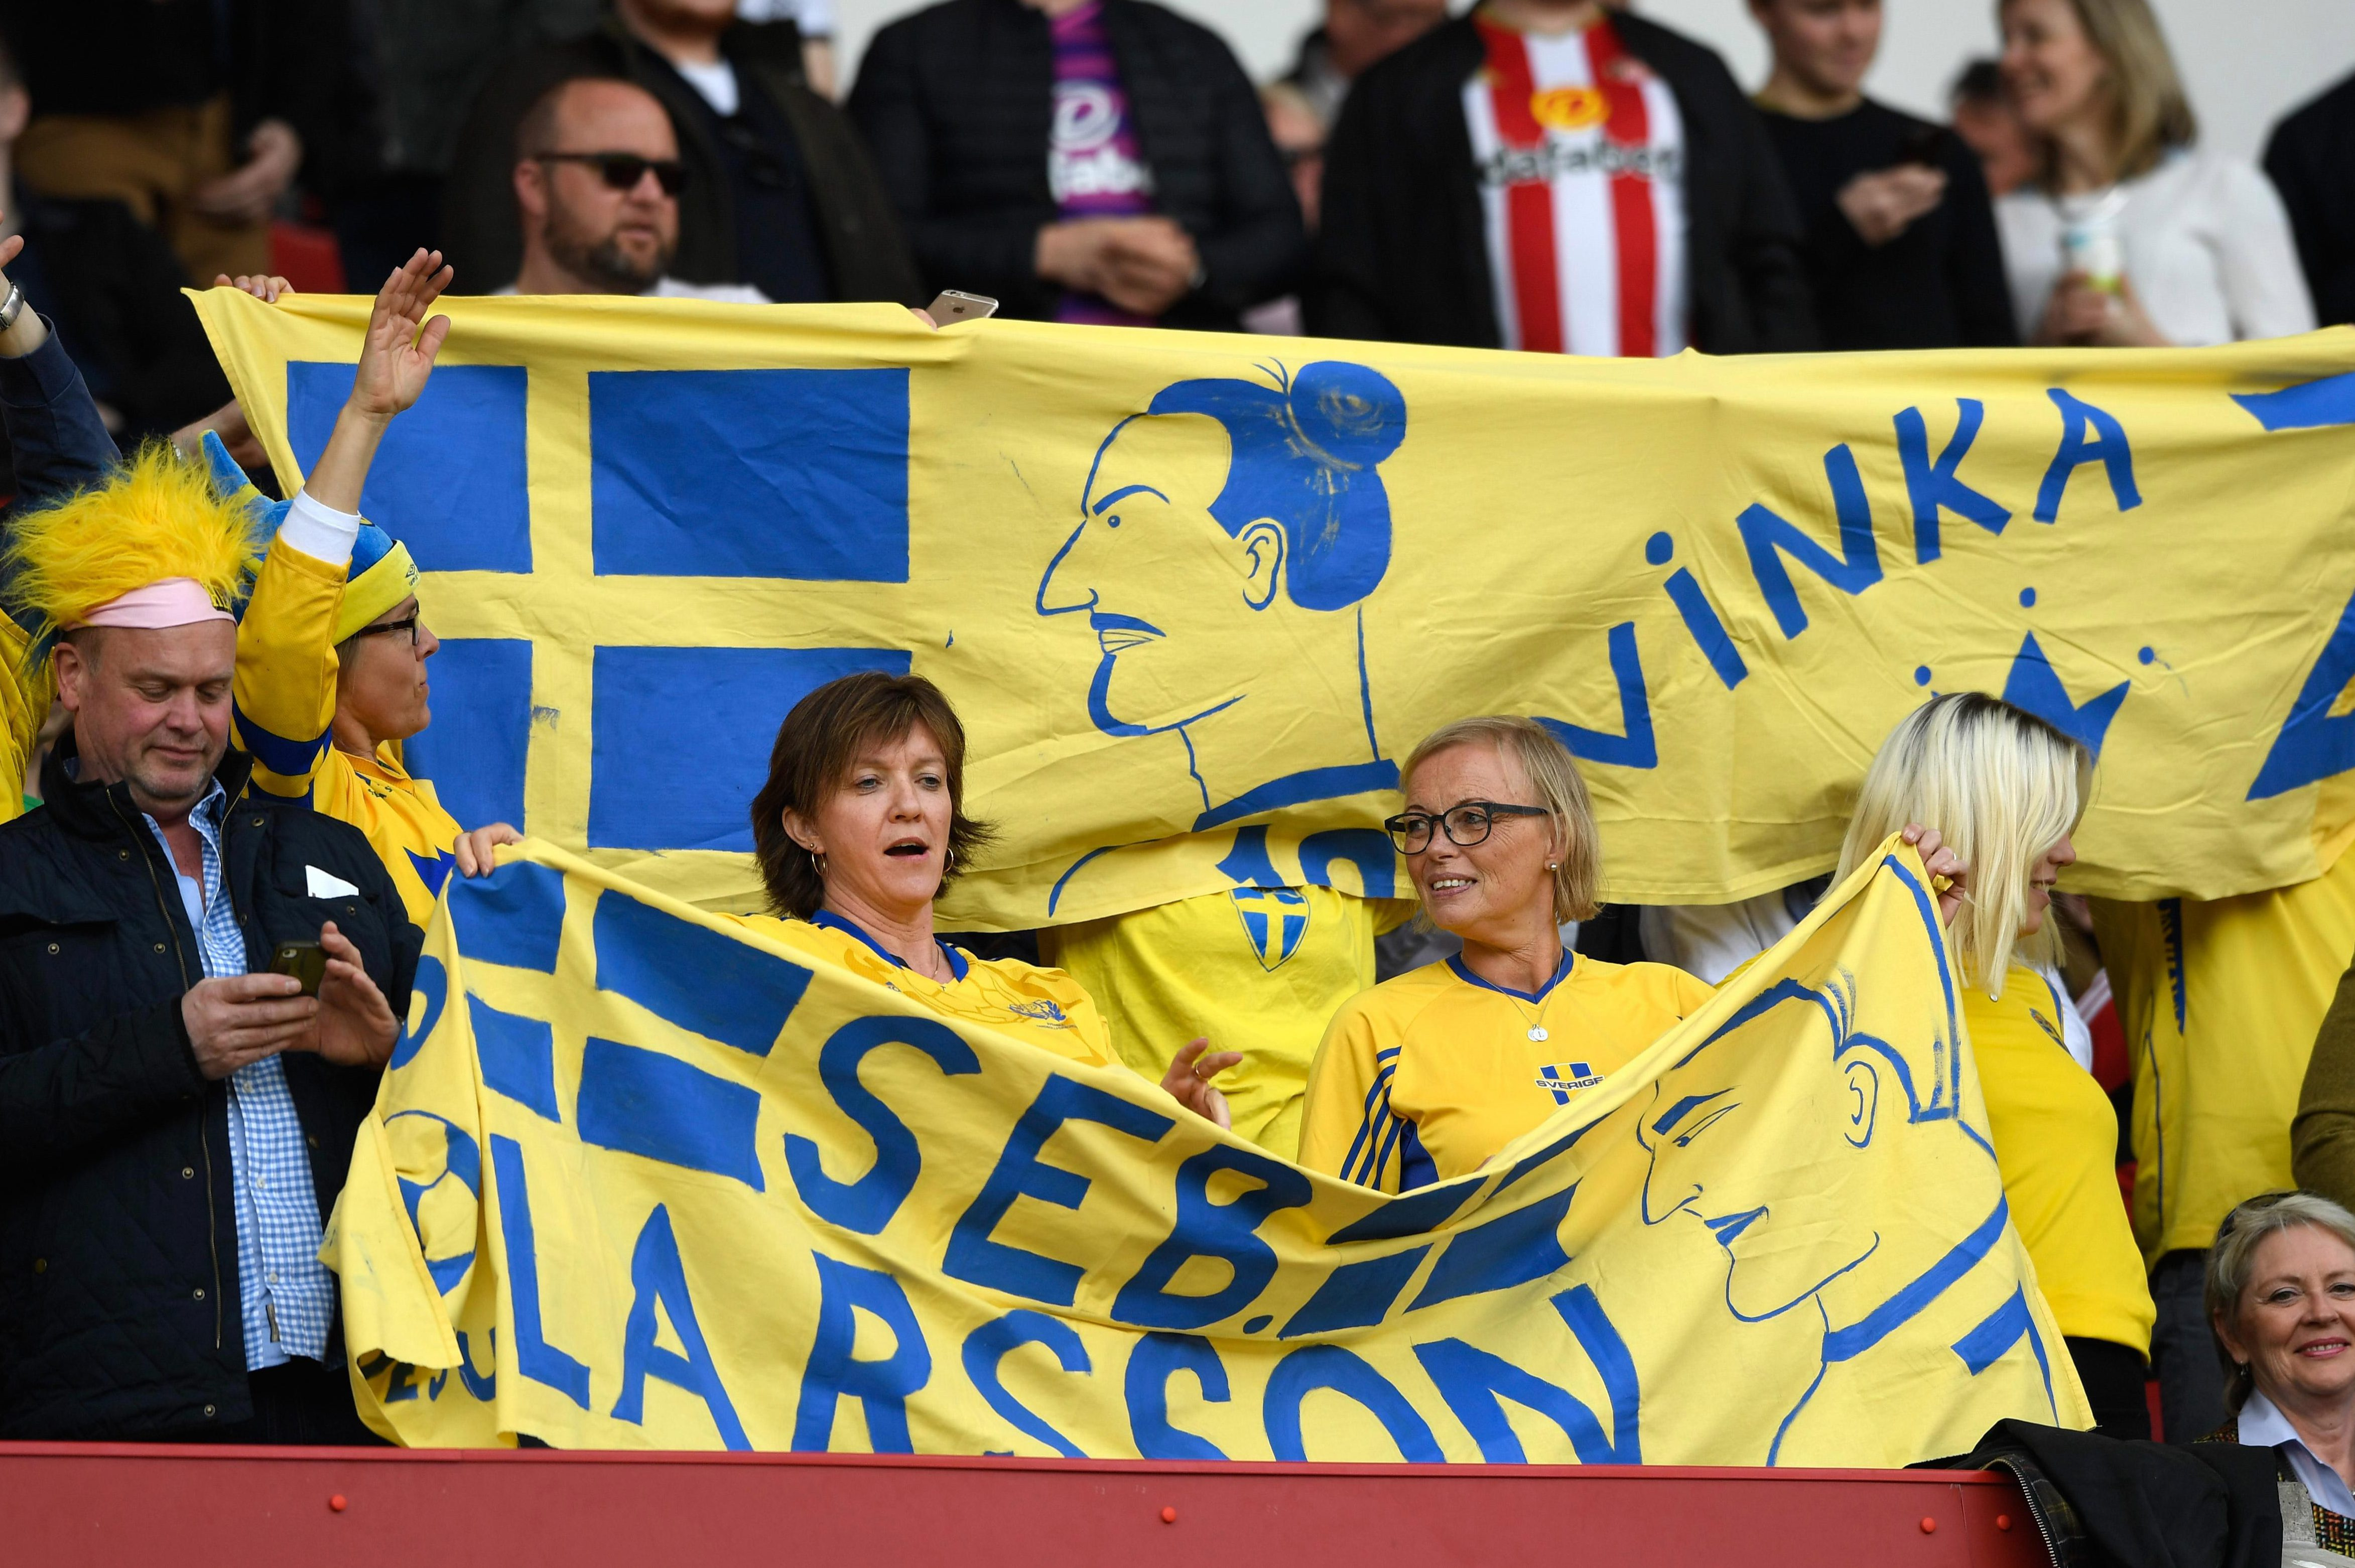 Zlatan is widely considered one of the best players in Sweden's history